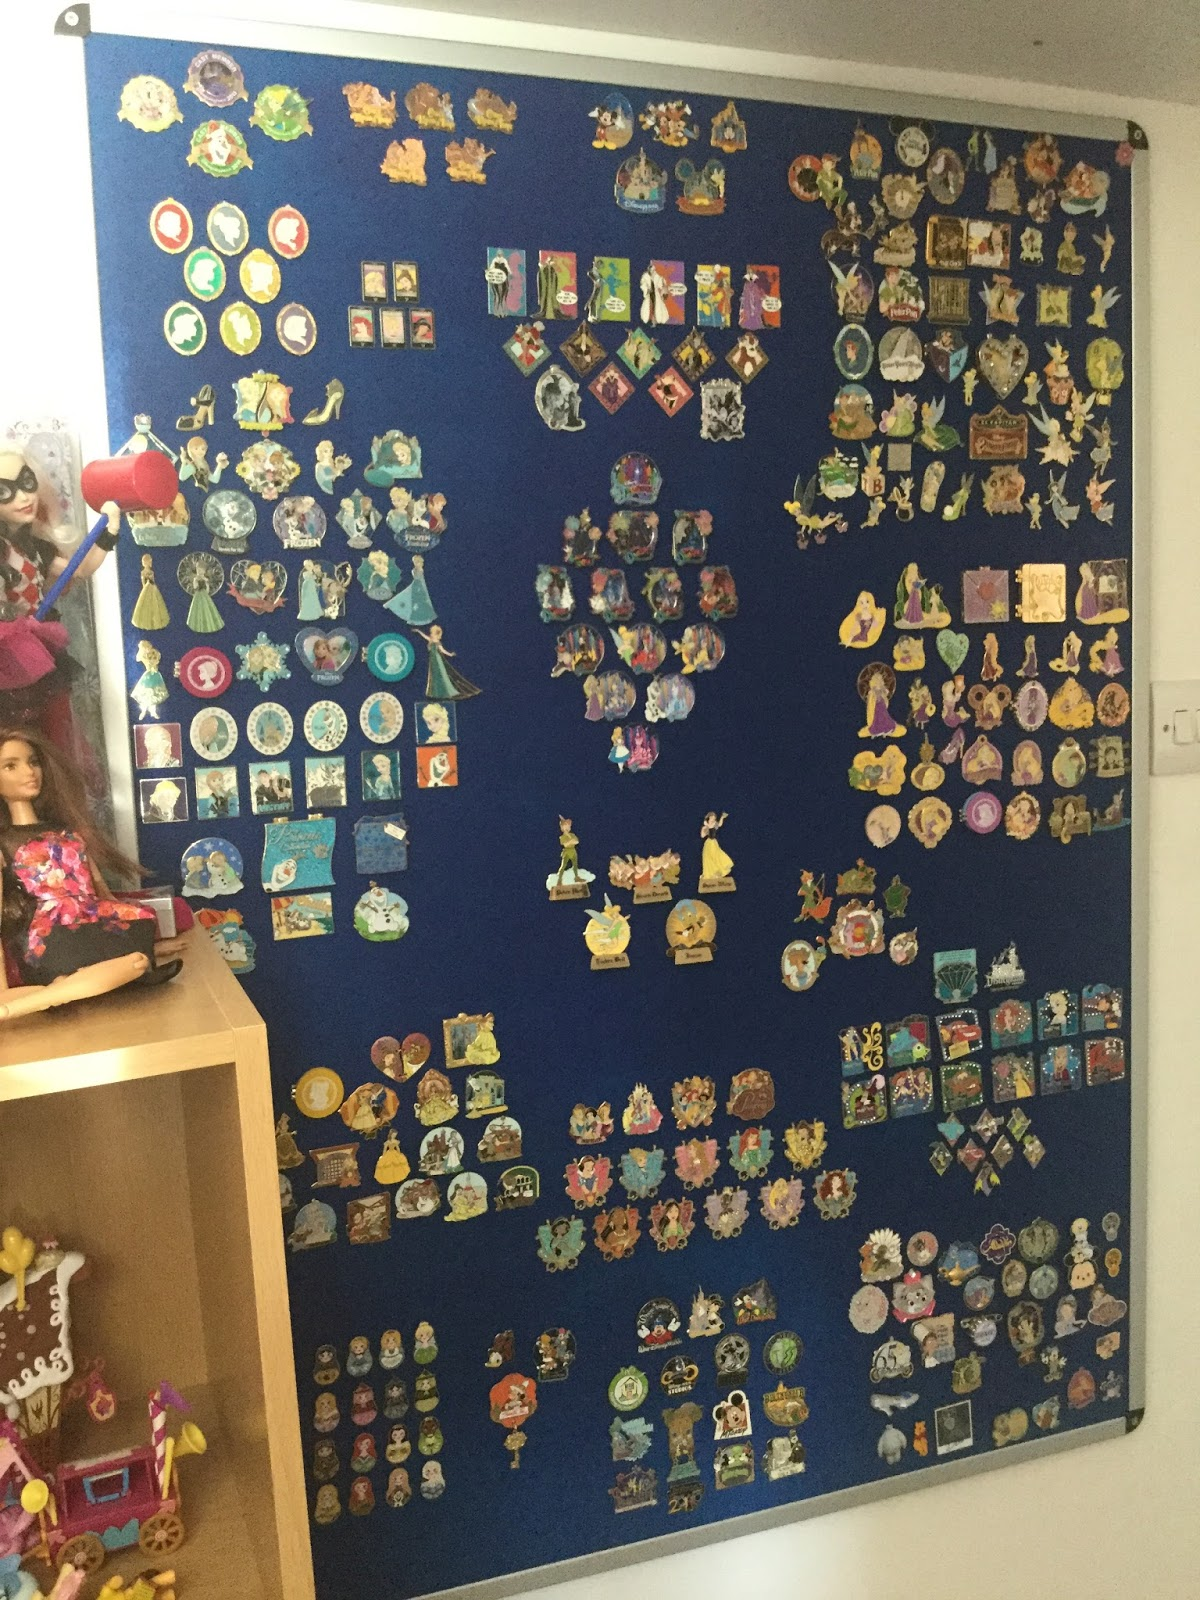 My Disney Pin Collection - The Perks of being Me